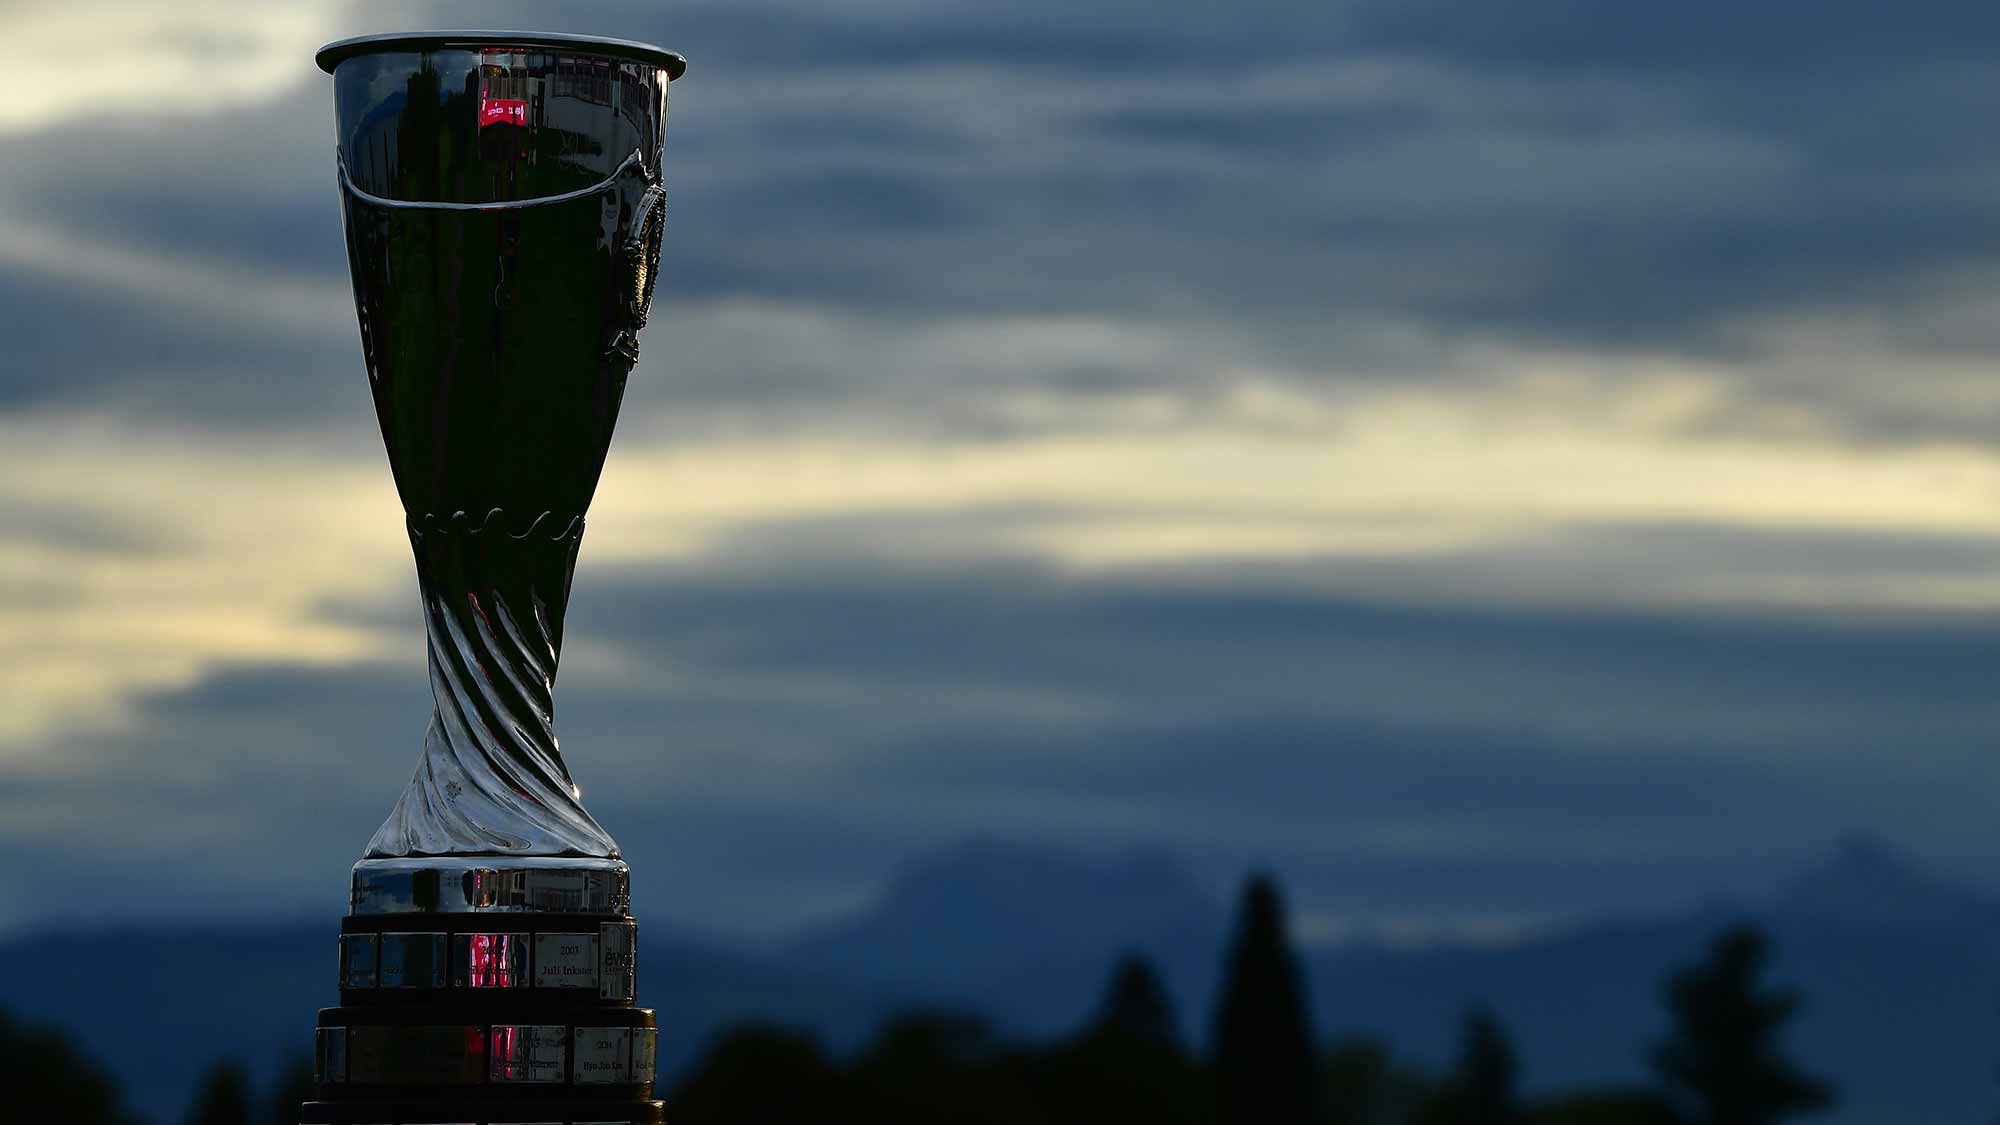 The winners trophy is seen during the pro - am prior to the start of The Evian Championship at Evian Resort Golf Club